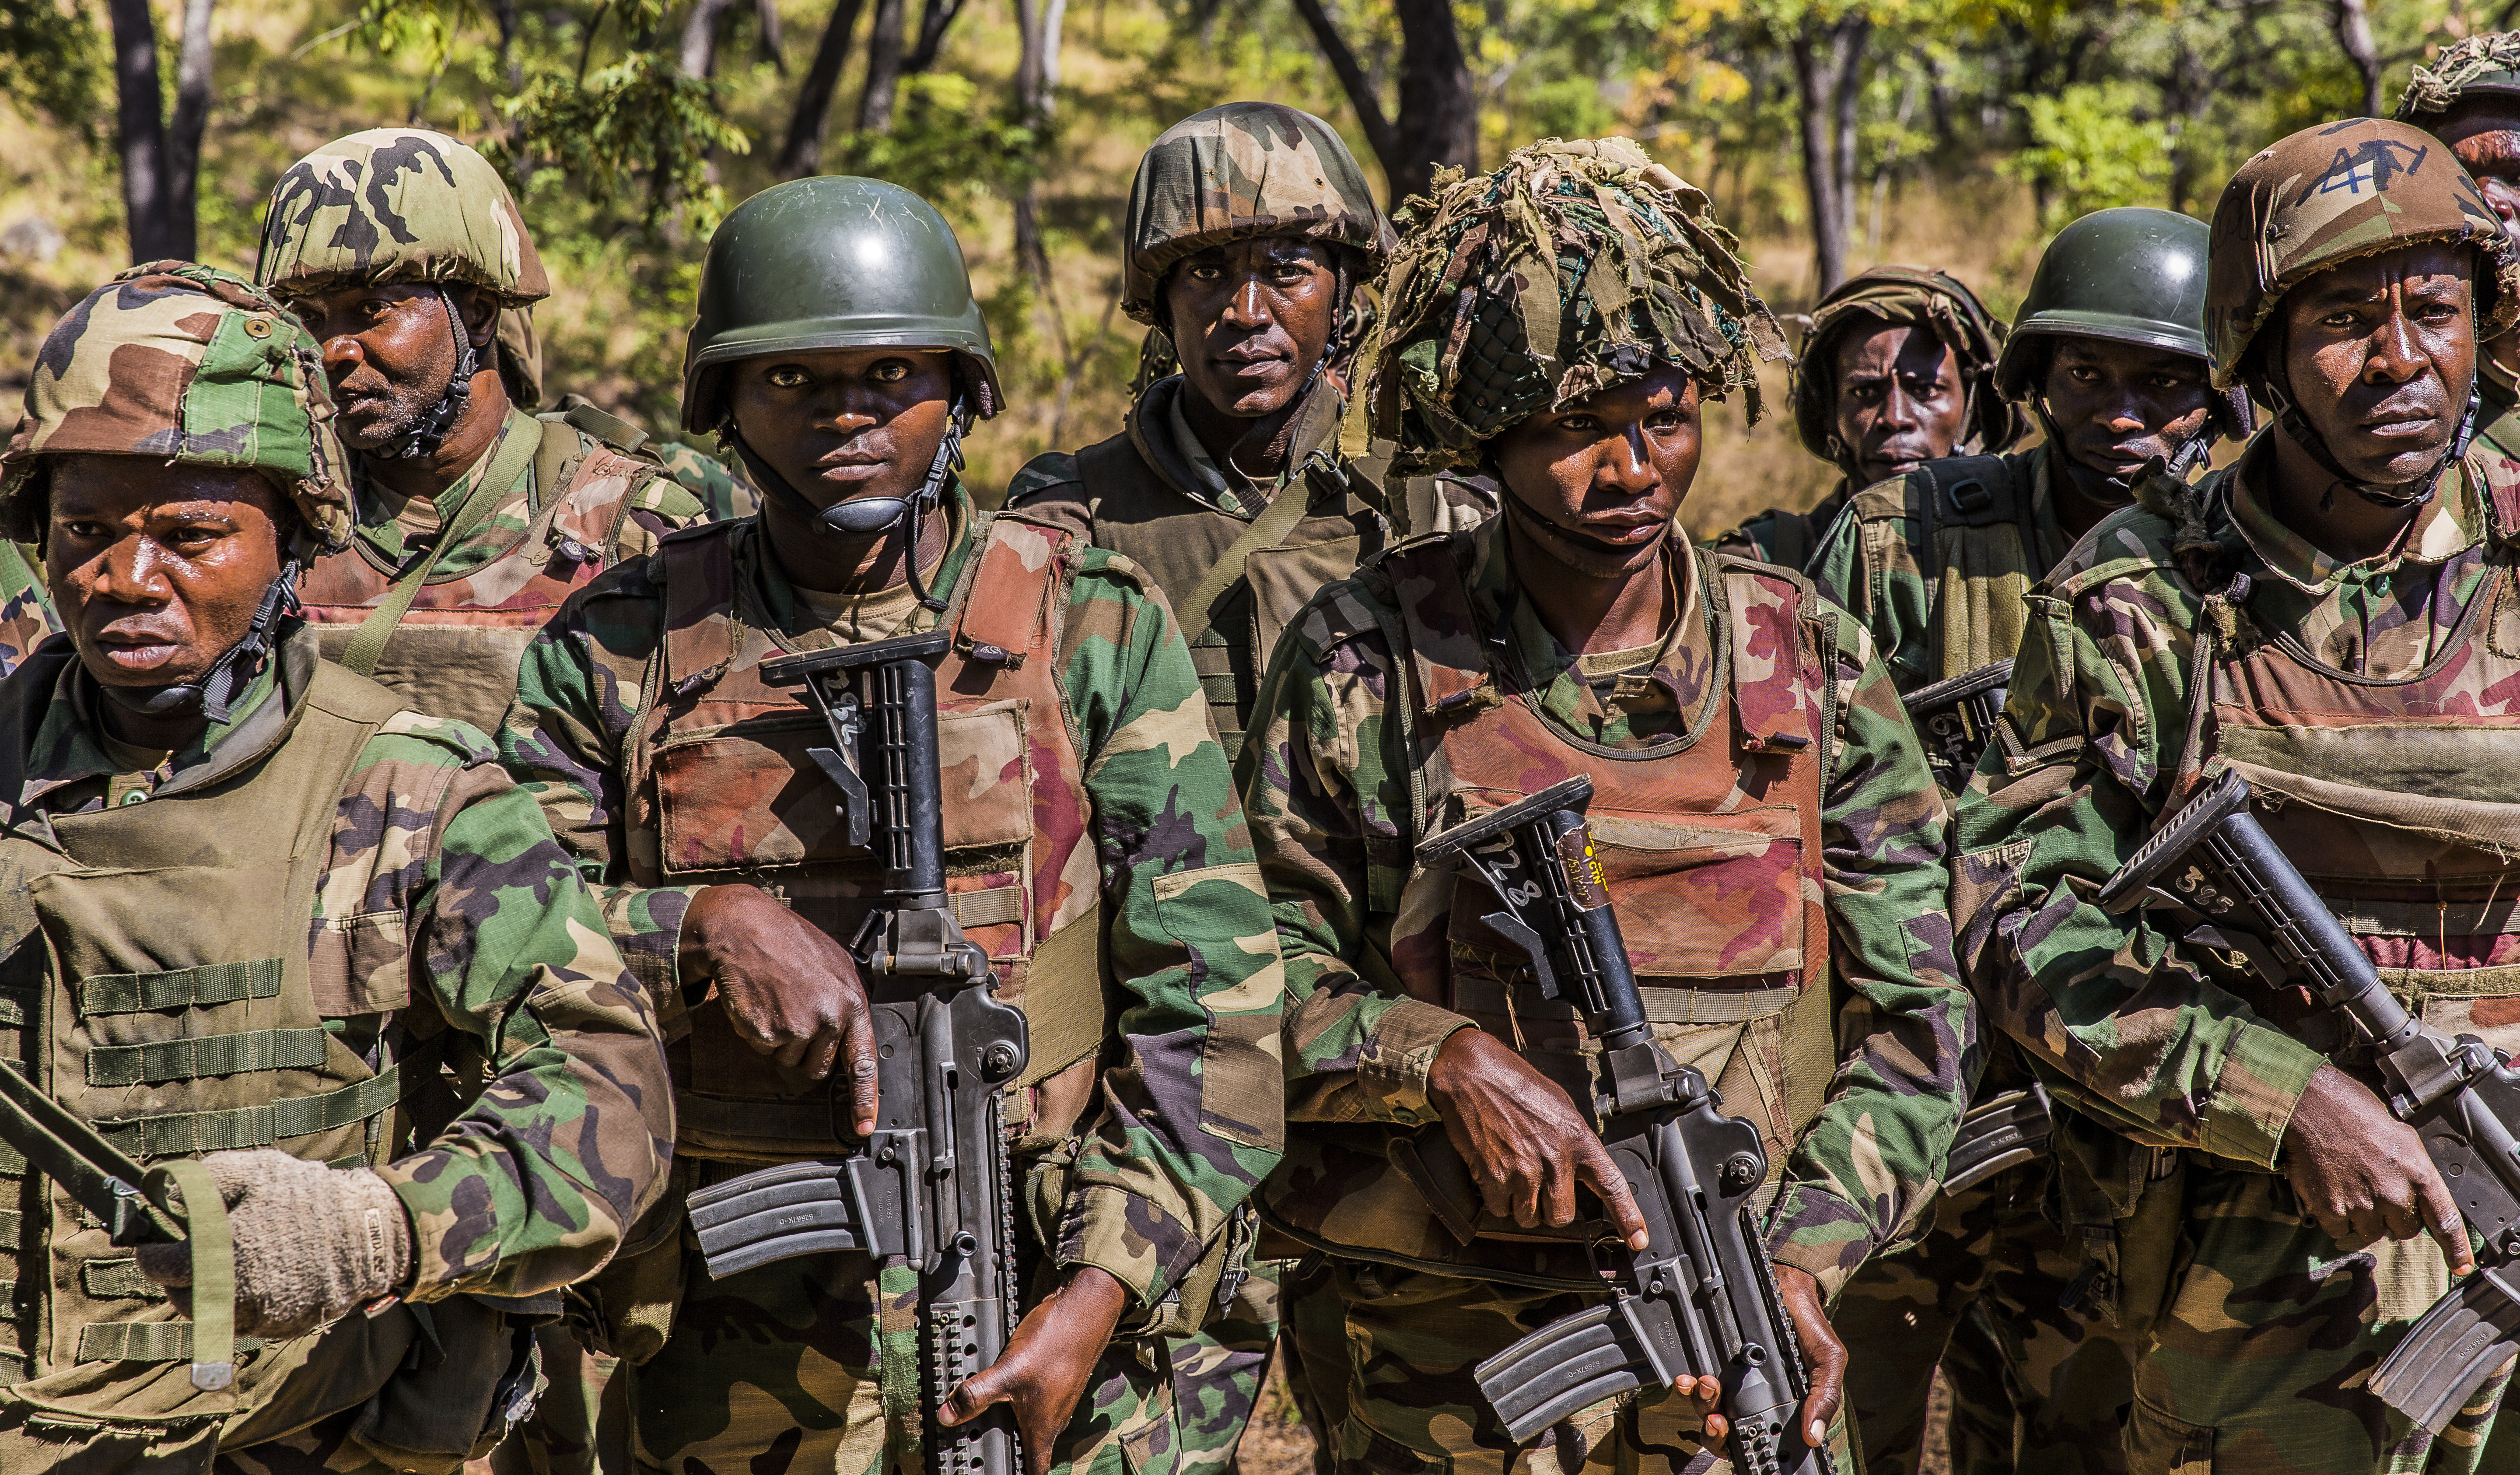 Soldiers from the Malawi Defence Force stand in formation while graduating the Malawi Battalion Training Course, May 31, 2018. U.S. Africa Command Senior Enlisted Leader Command Chief Master Sgt. Ramon Colon-Lopez and his team traveled to the MALBAT Training Site to follow-up on issues addressed by the MDF during the Africa Senior Enlisted Leader Conference in November 2017, and to assess the MDF's capability to train and sustain Peace Keeping Operations Forces.